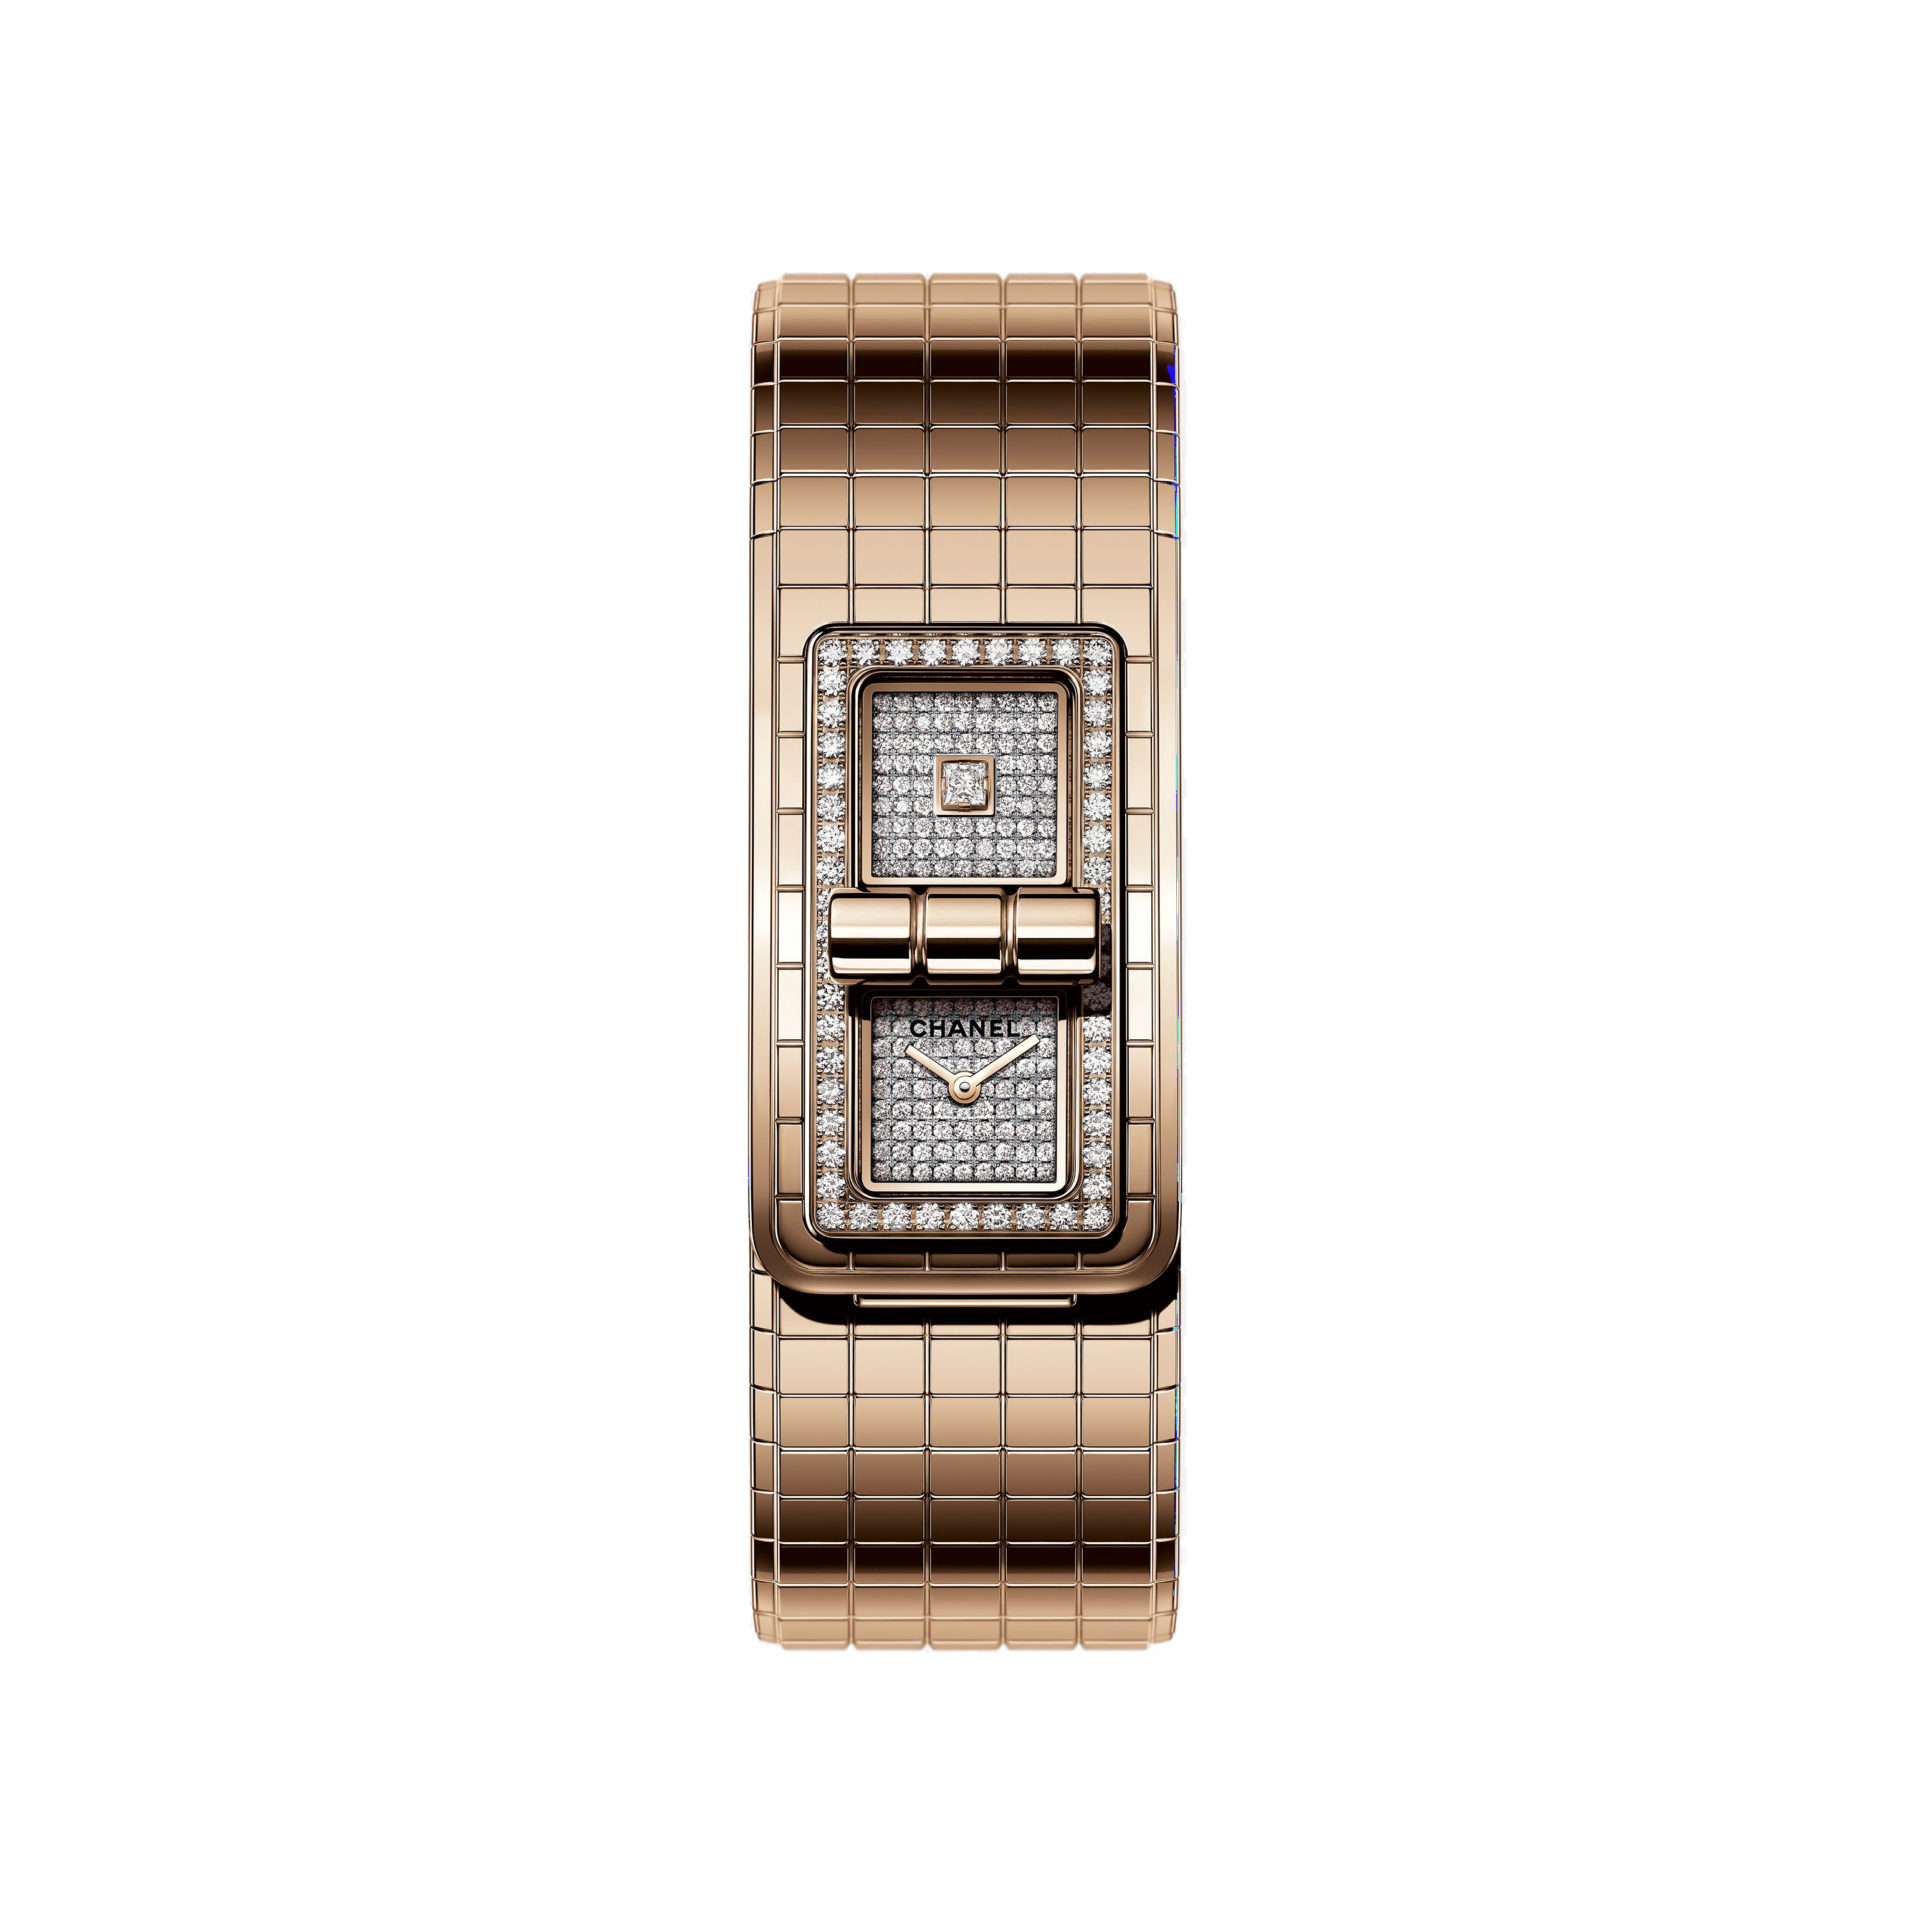 Chanel-Code-Coco-Hall-of-Time-H5146